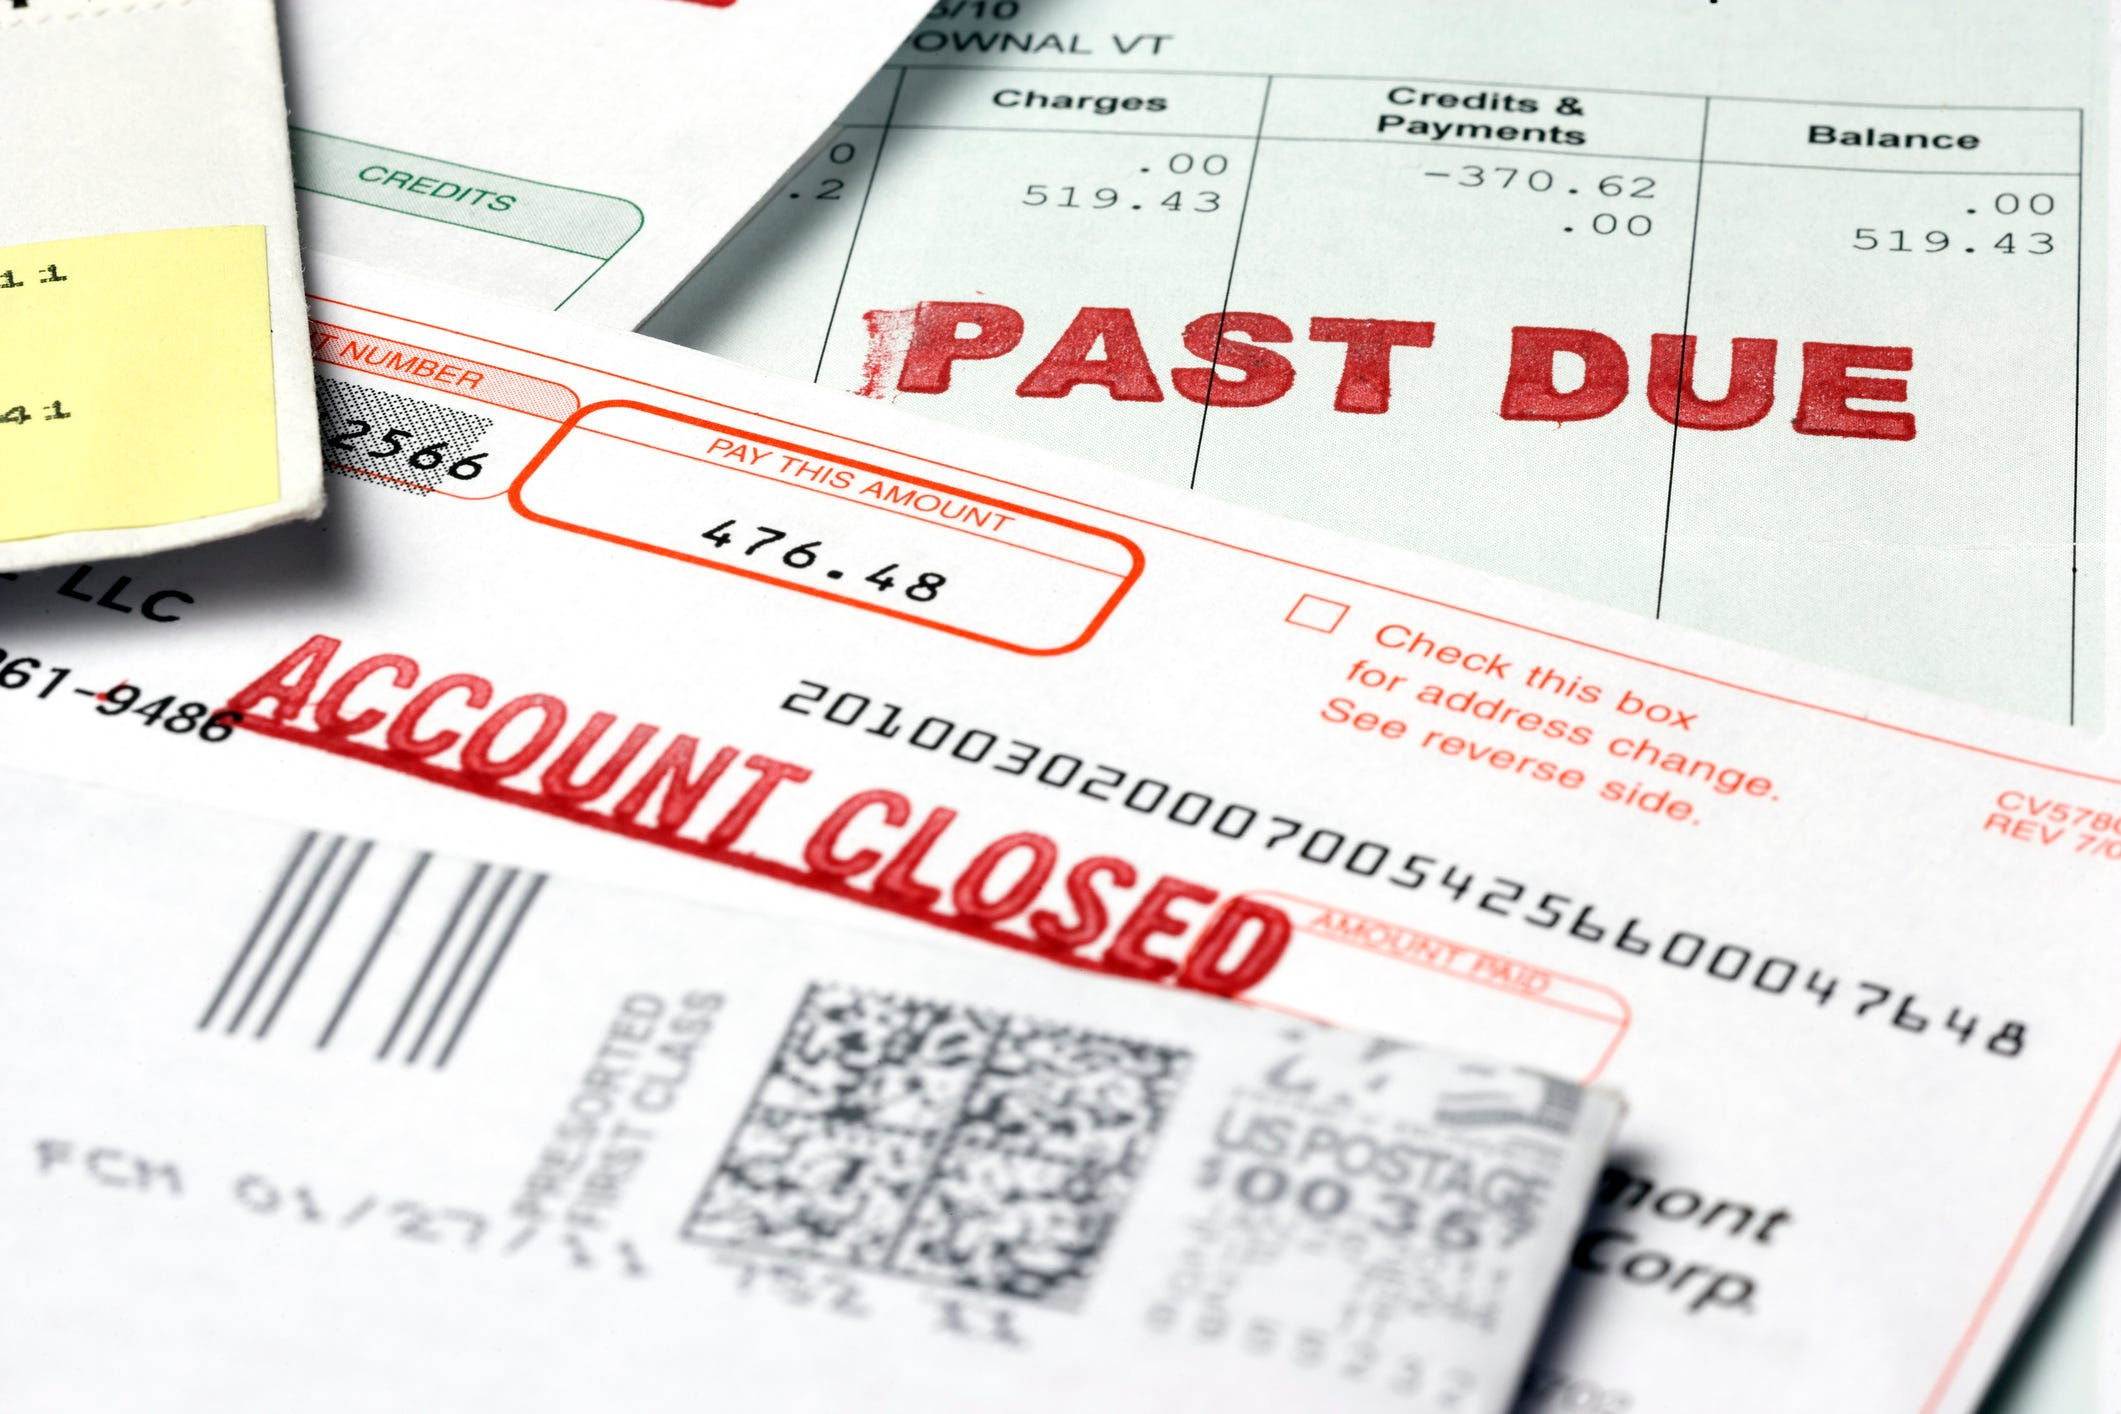 Debt collectors would be able to text and email about missed payments under proposal